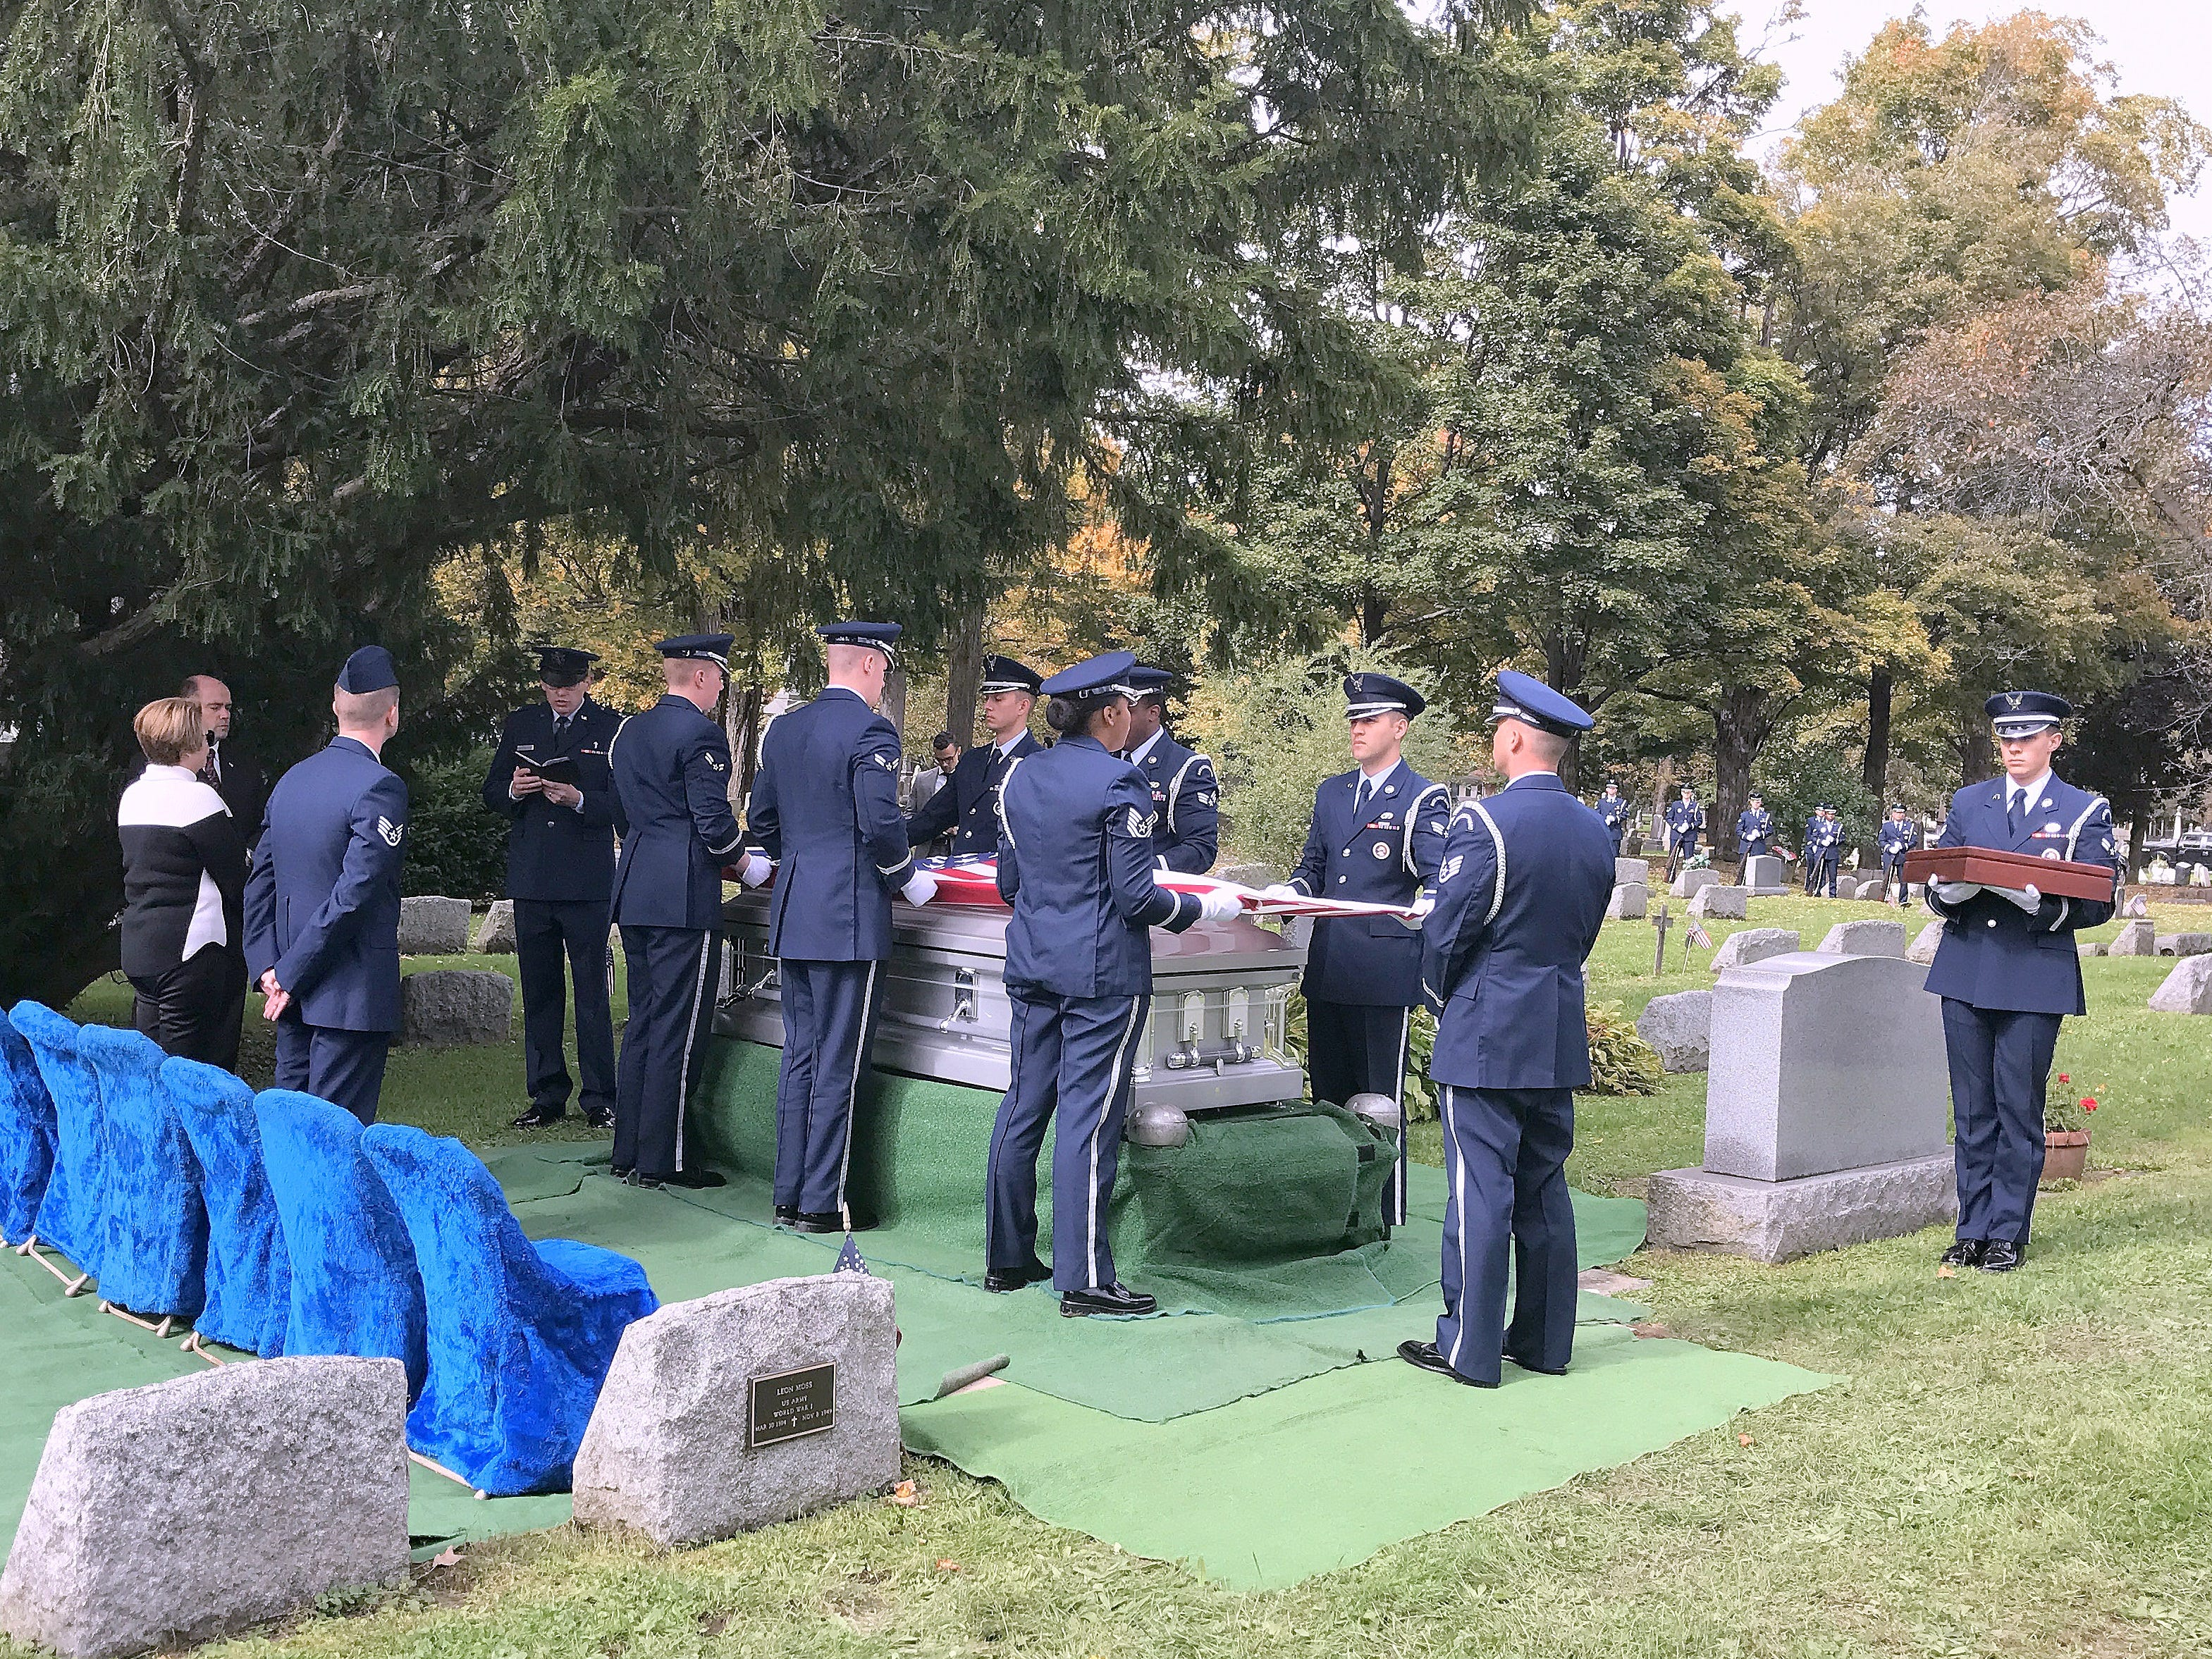 Pallbearers prepare to fold the American flag draped over the coffin of U.S. Air Force Staff Sgt. Eugene Costley during his funeral Friday at Maple Grove Cemetery in Horseheads.